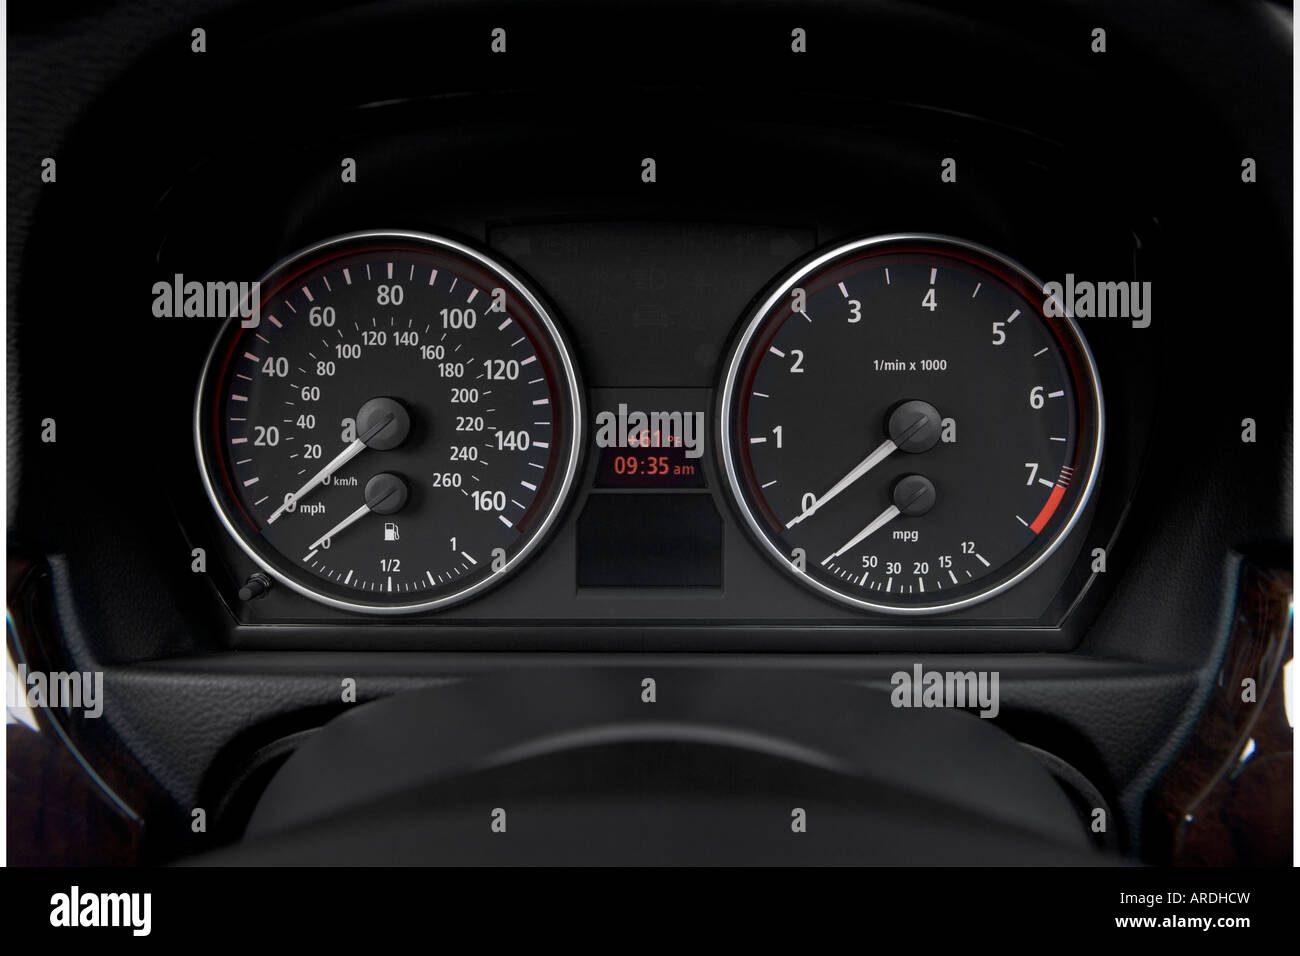 2006 BMW 3-Series 325xi in Silver - Speedometer/tachometer